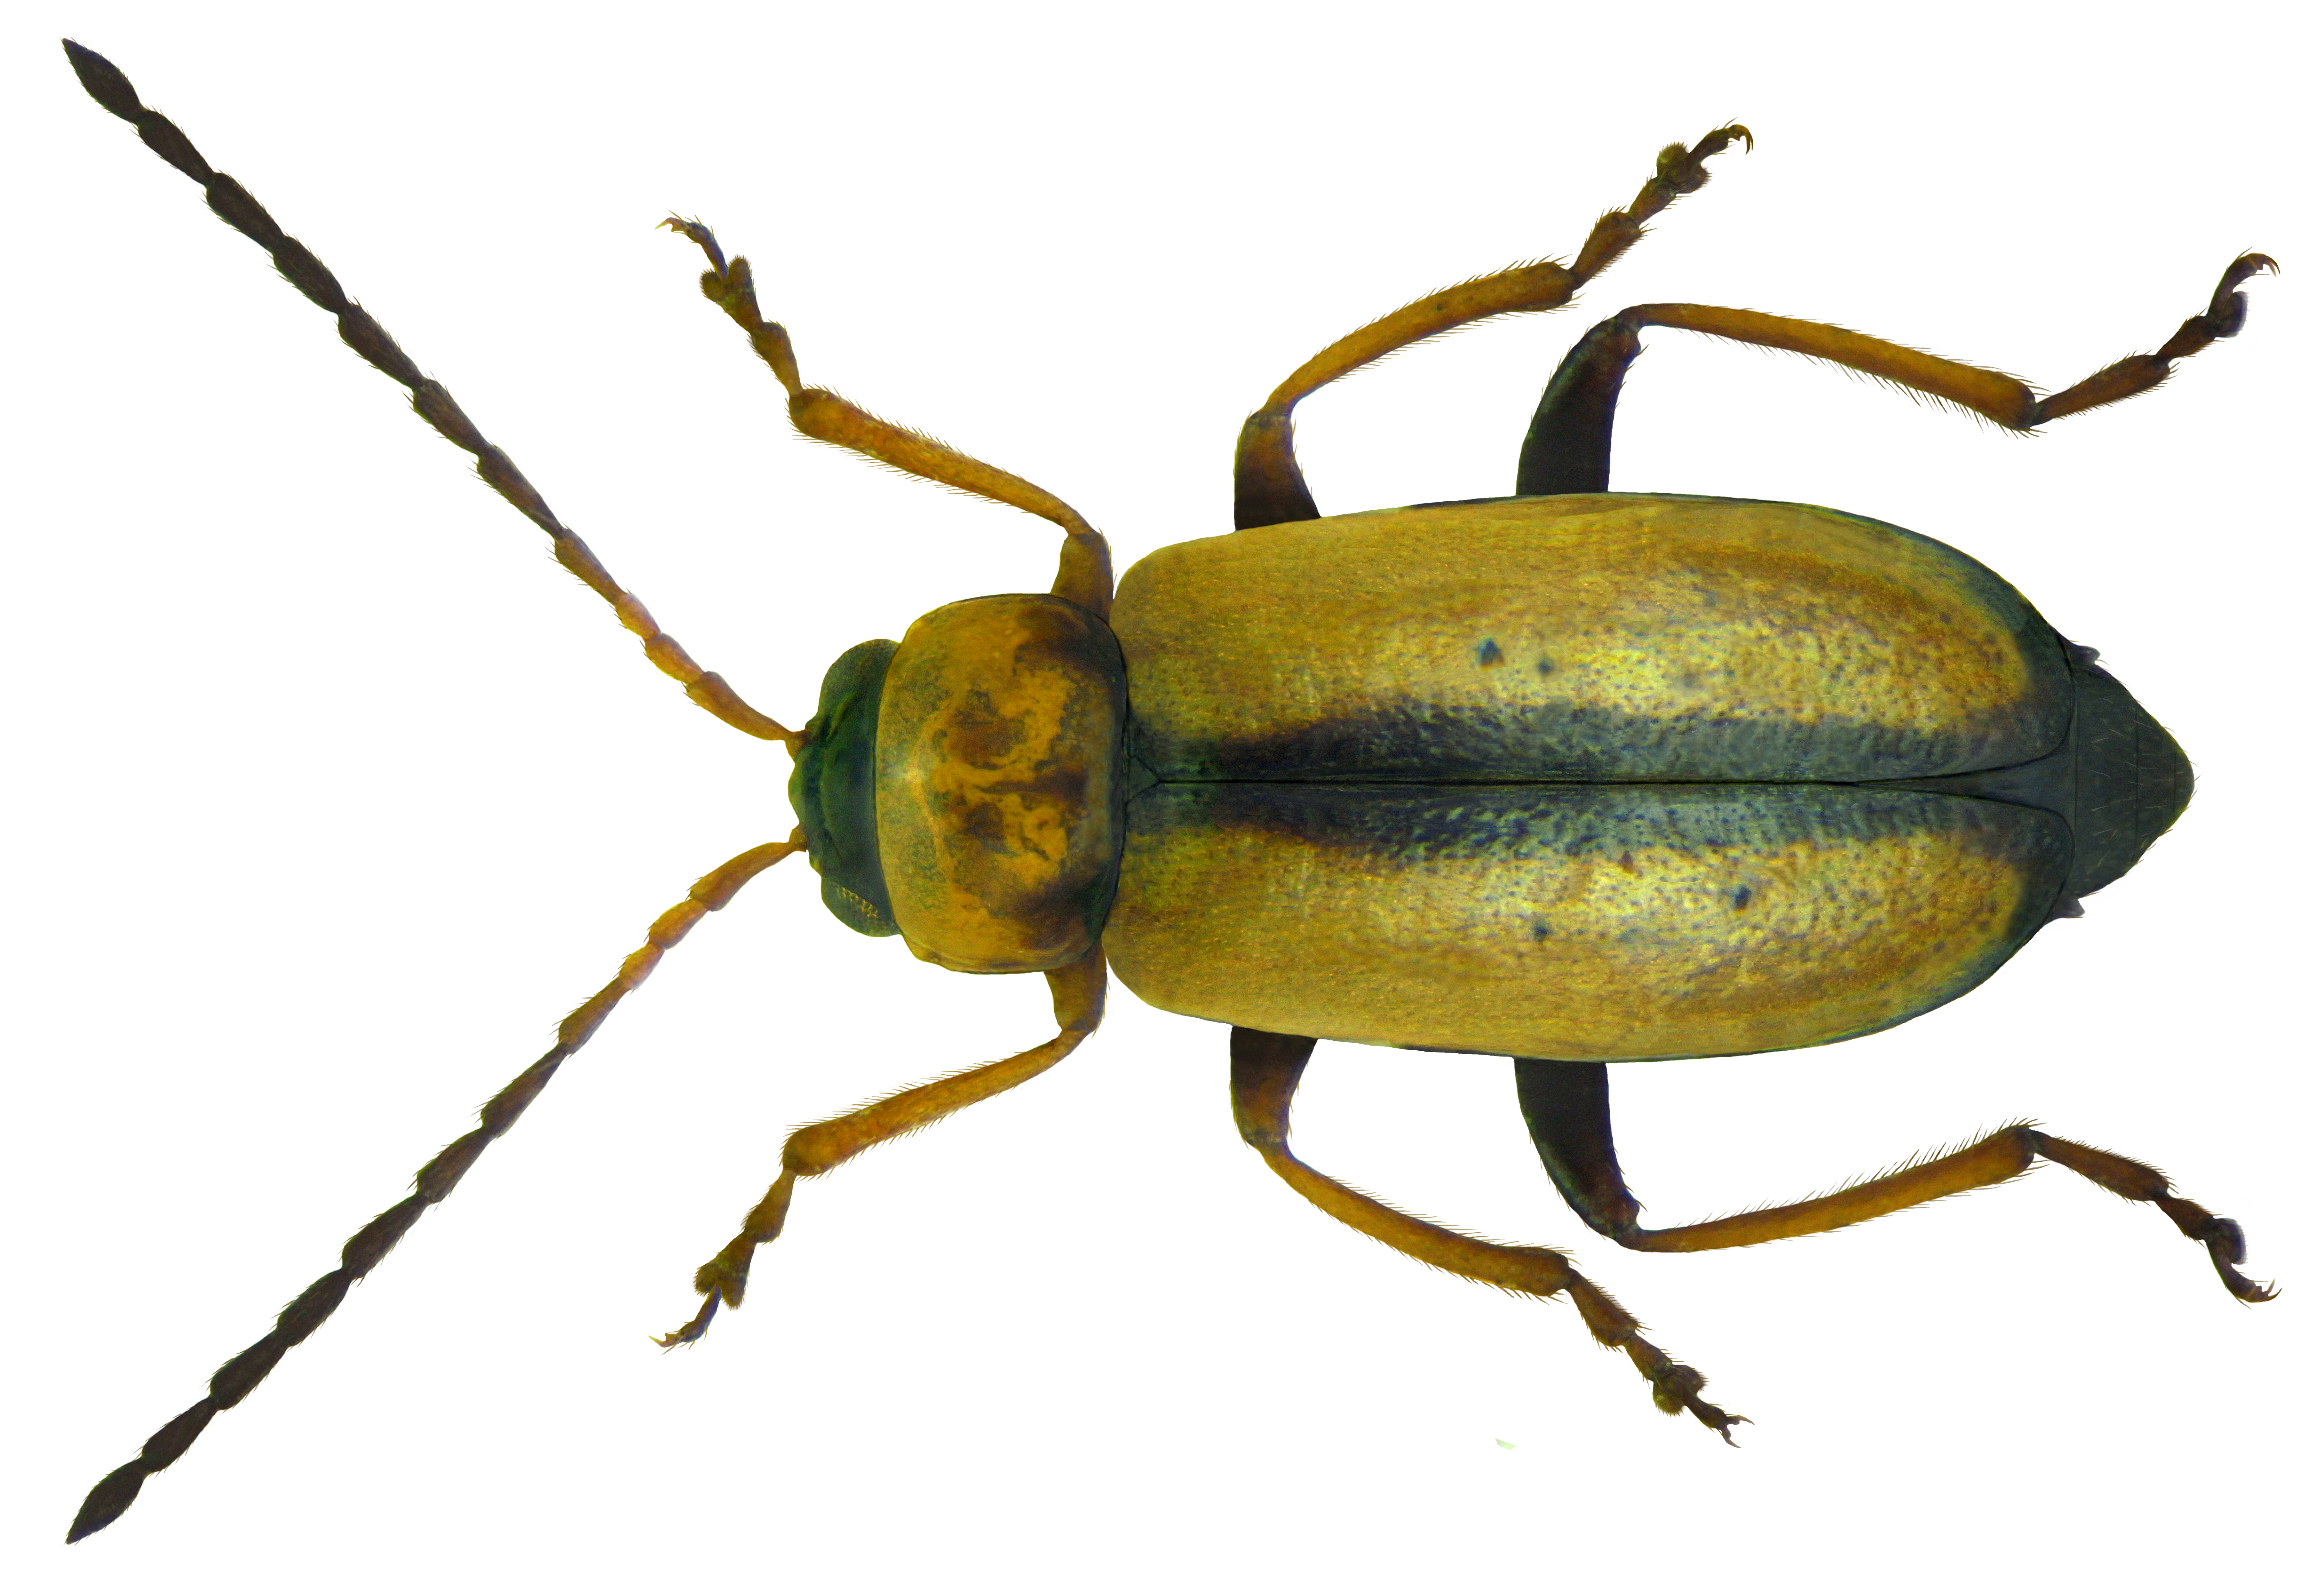 File:calomicrus Circumfusus (Marsham, 1802).png - Insects, Transparent background PNG HD thumbnail